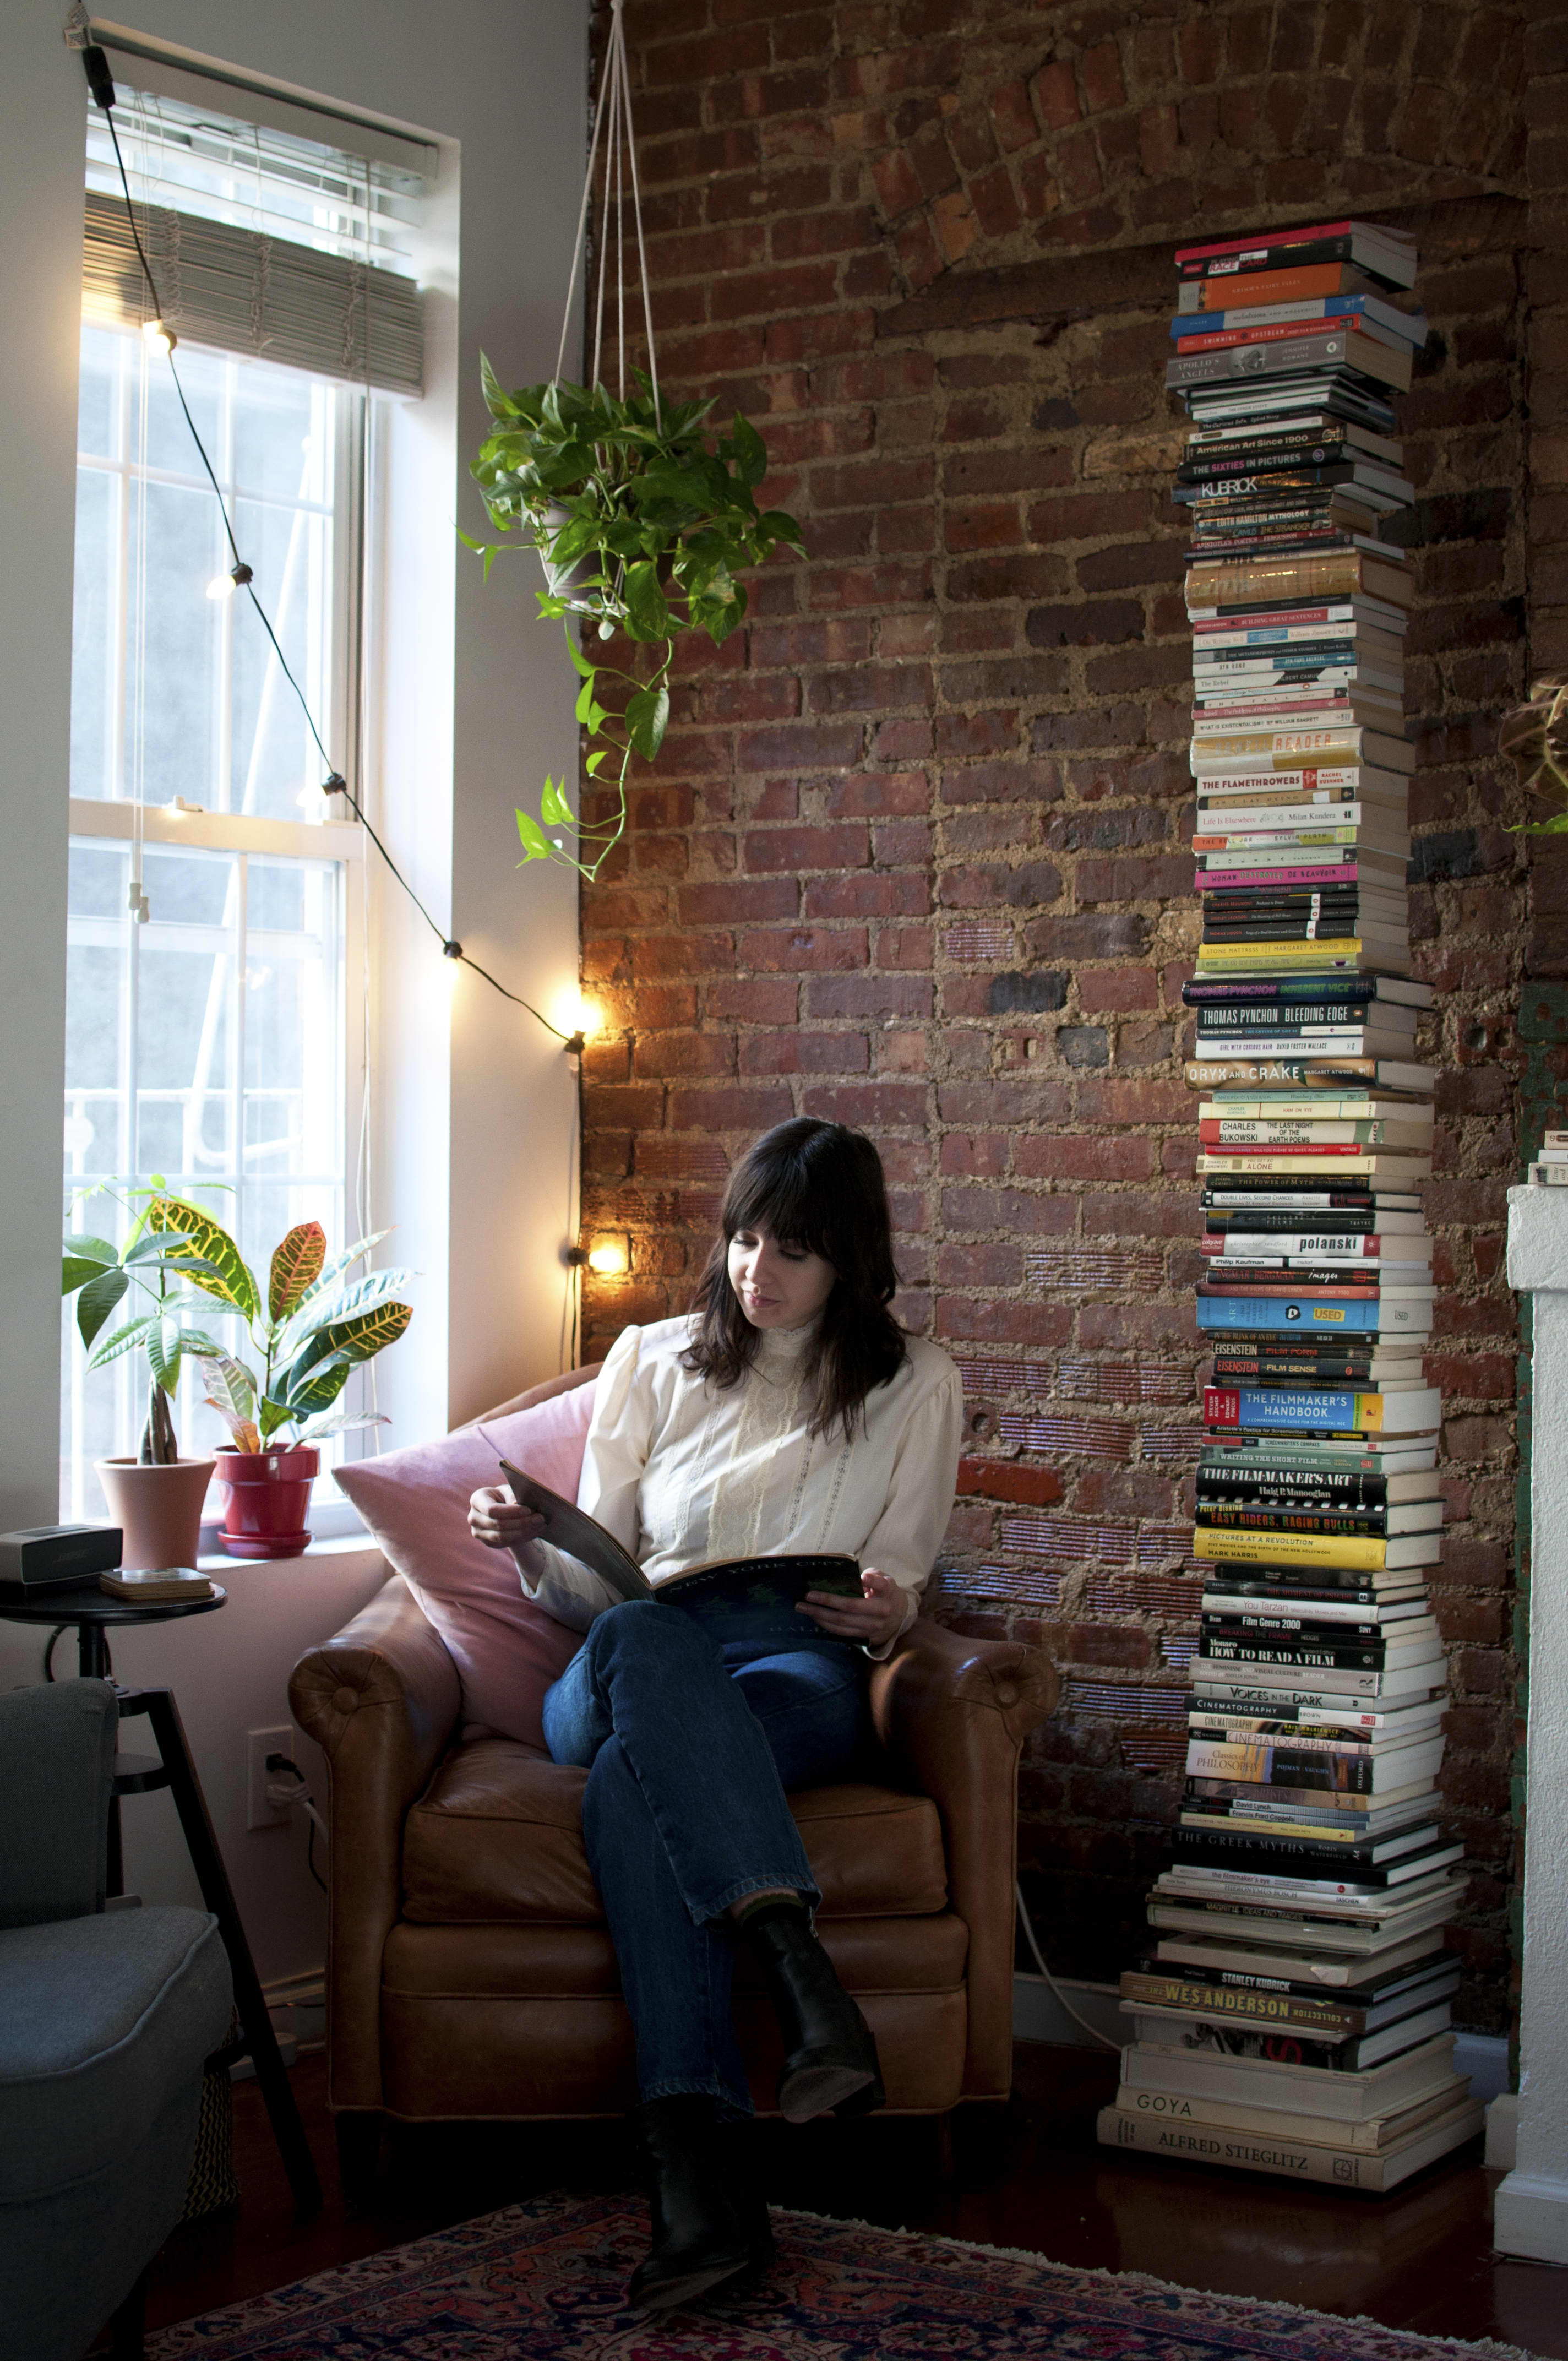 House Tour: A Tiny, 200 Square Foot Greenwich Village Studio